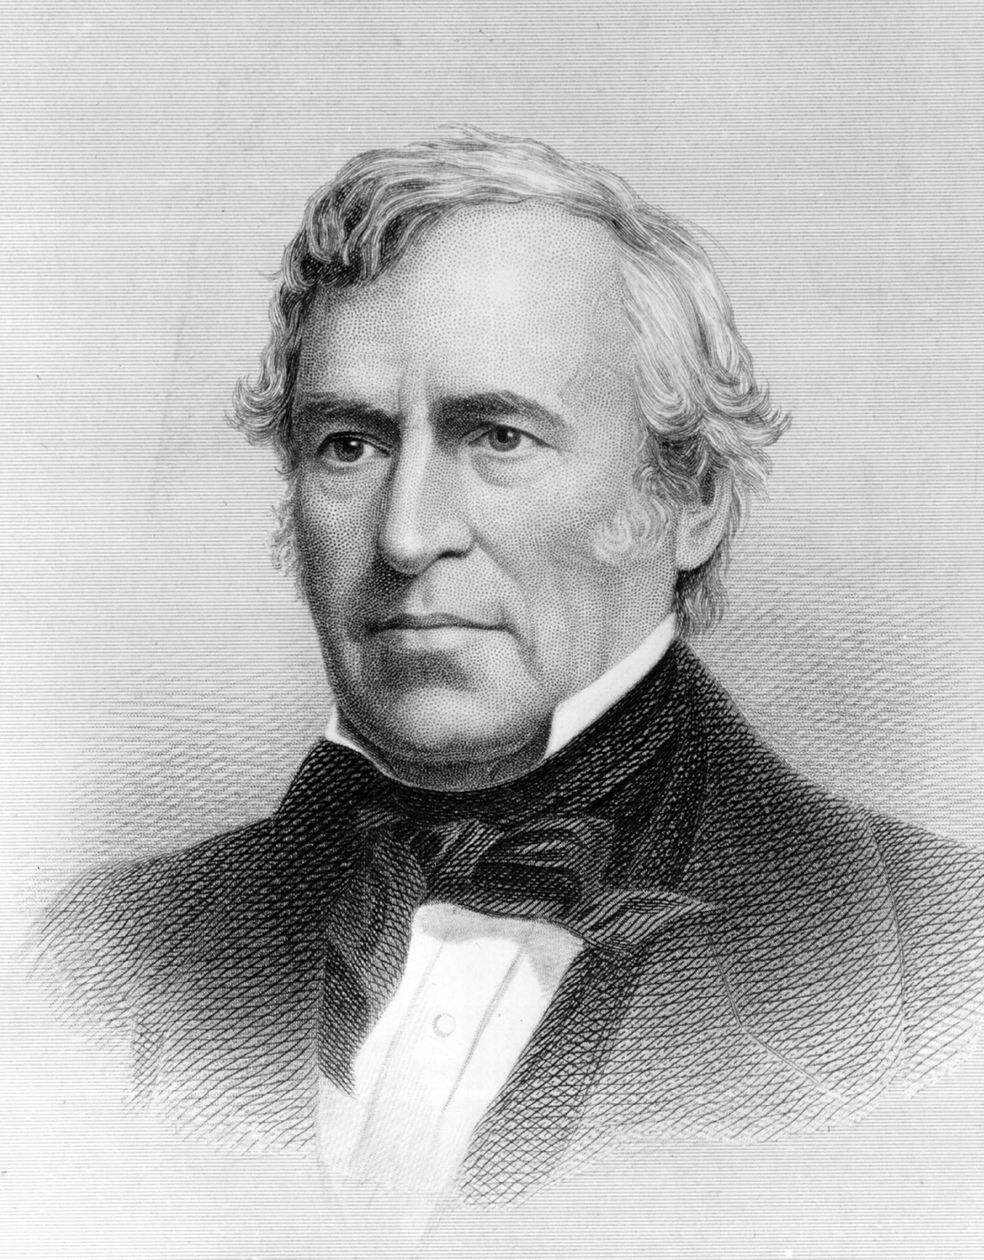 zachary taylor facts zachary taylor fun facts zachary taylor interesting facts zachary taylor childhood facts